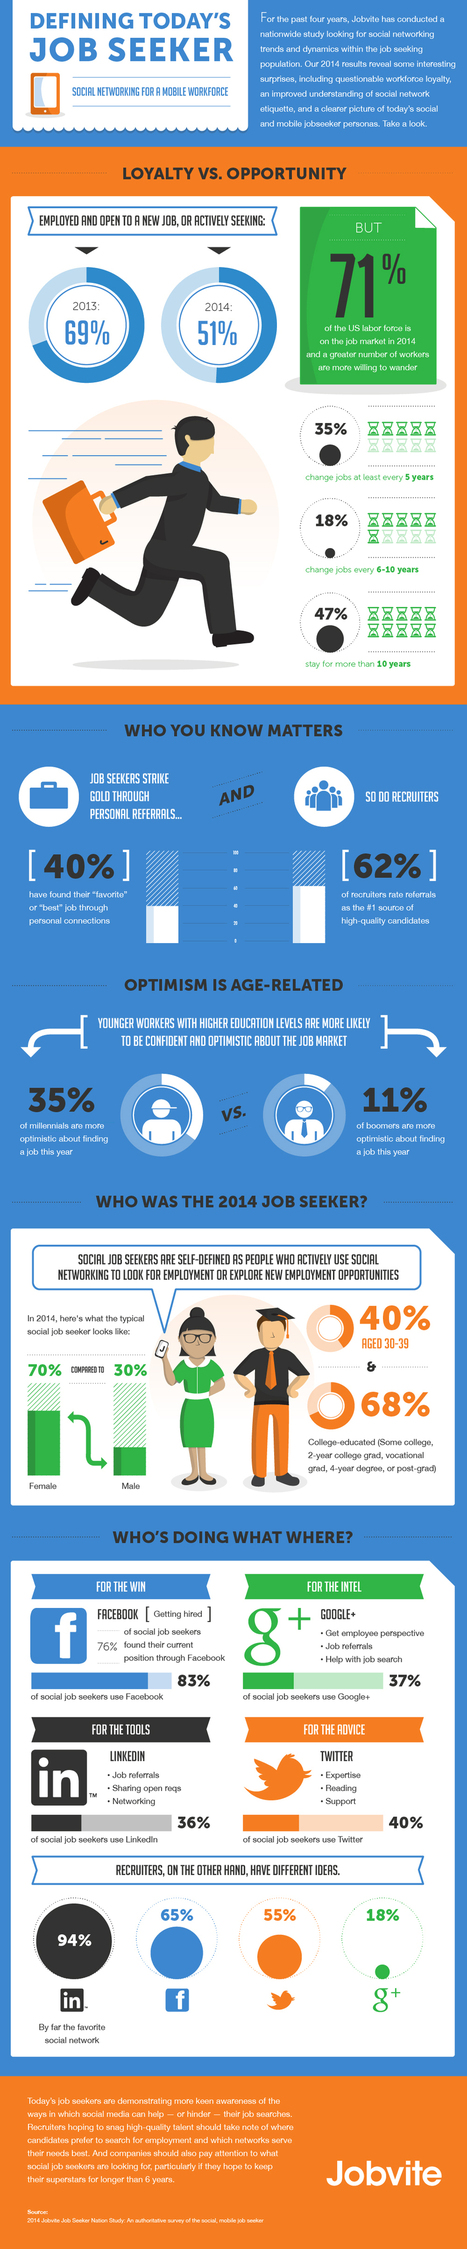 How Job Seekers Use Social Media and Mobile in 2014 [INFOGRAPHIC] | Social Media and Network Analysis | Scoop.it